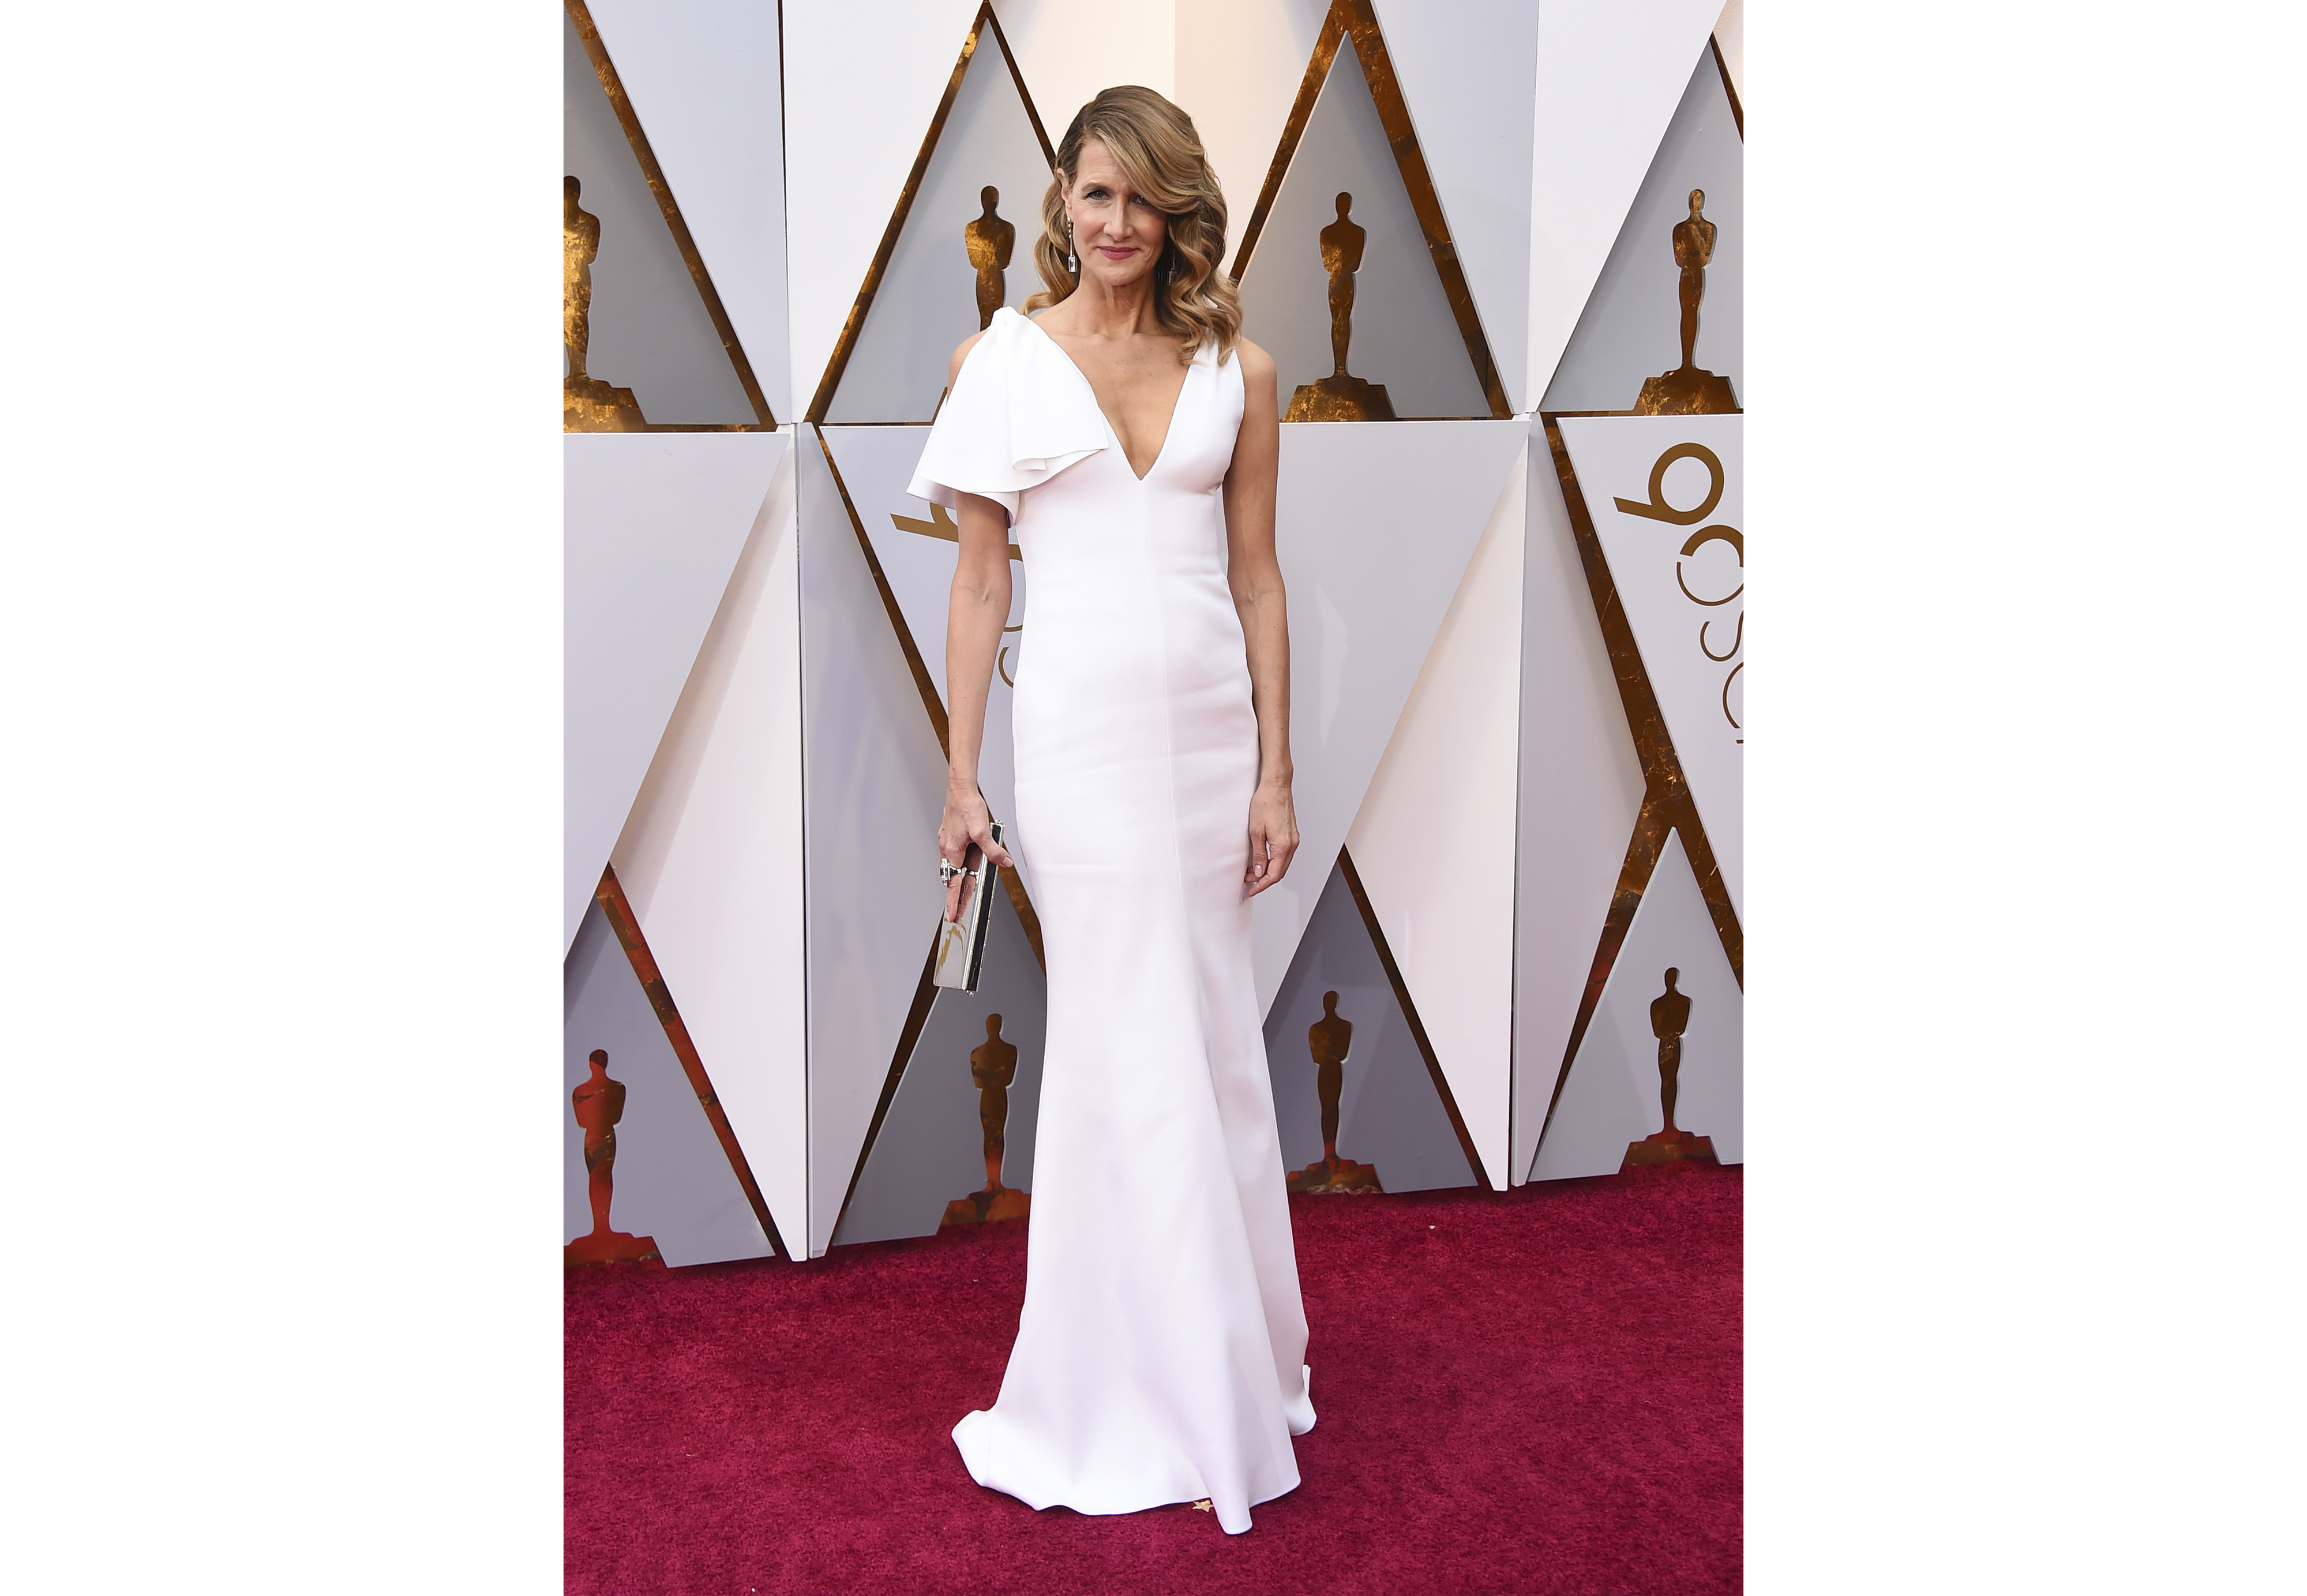 Laura Dern arrives at the Oscars on Sunday, March 4, 2018, at the Dolby Theatre in Los Angeles